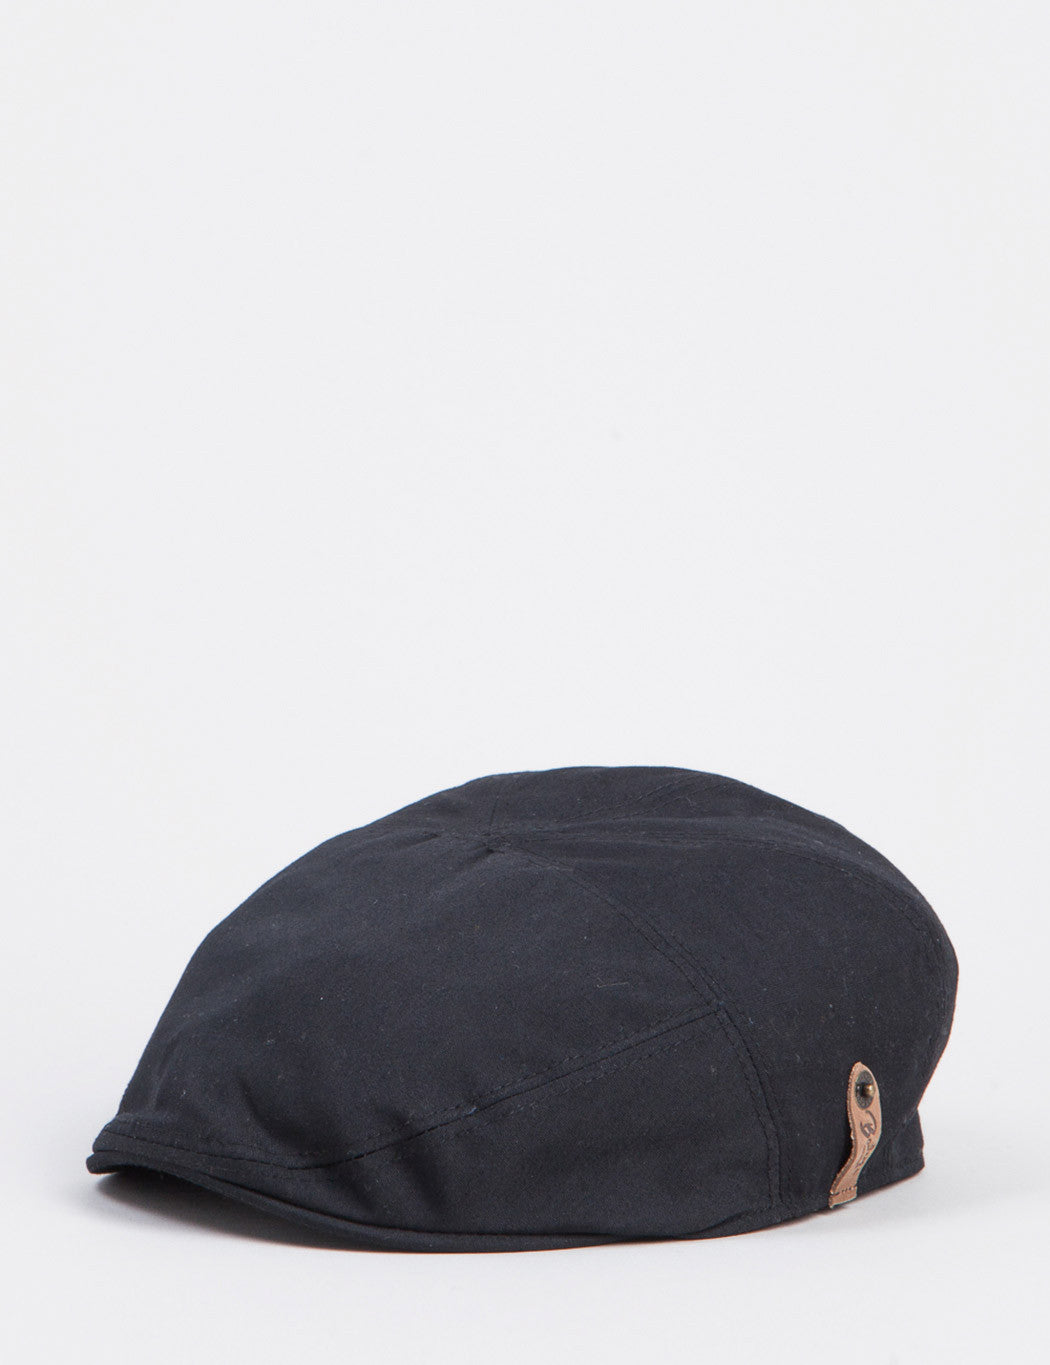 Bailey Graham Waterproof Ivy Flat Cap - Black